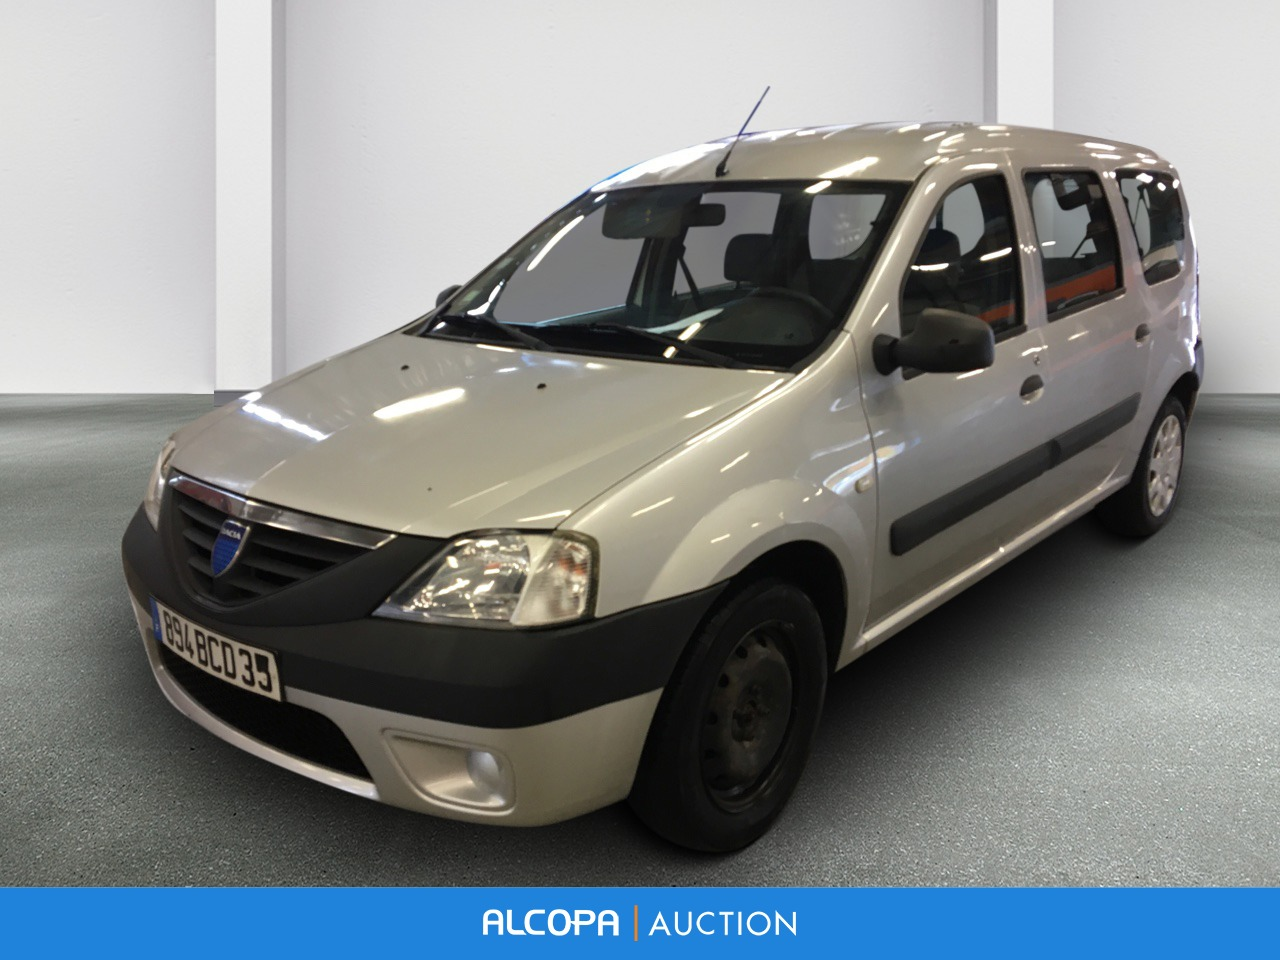 dacia logan mcv logan mcv 1 5 dci 70 7 places ambiance alcopa auction